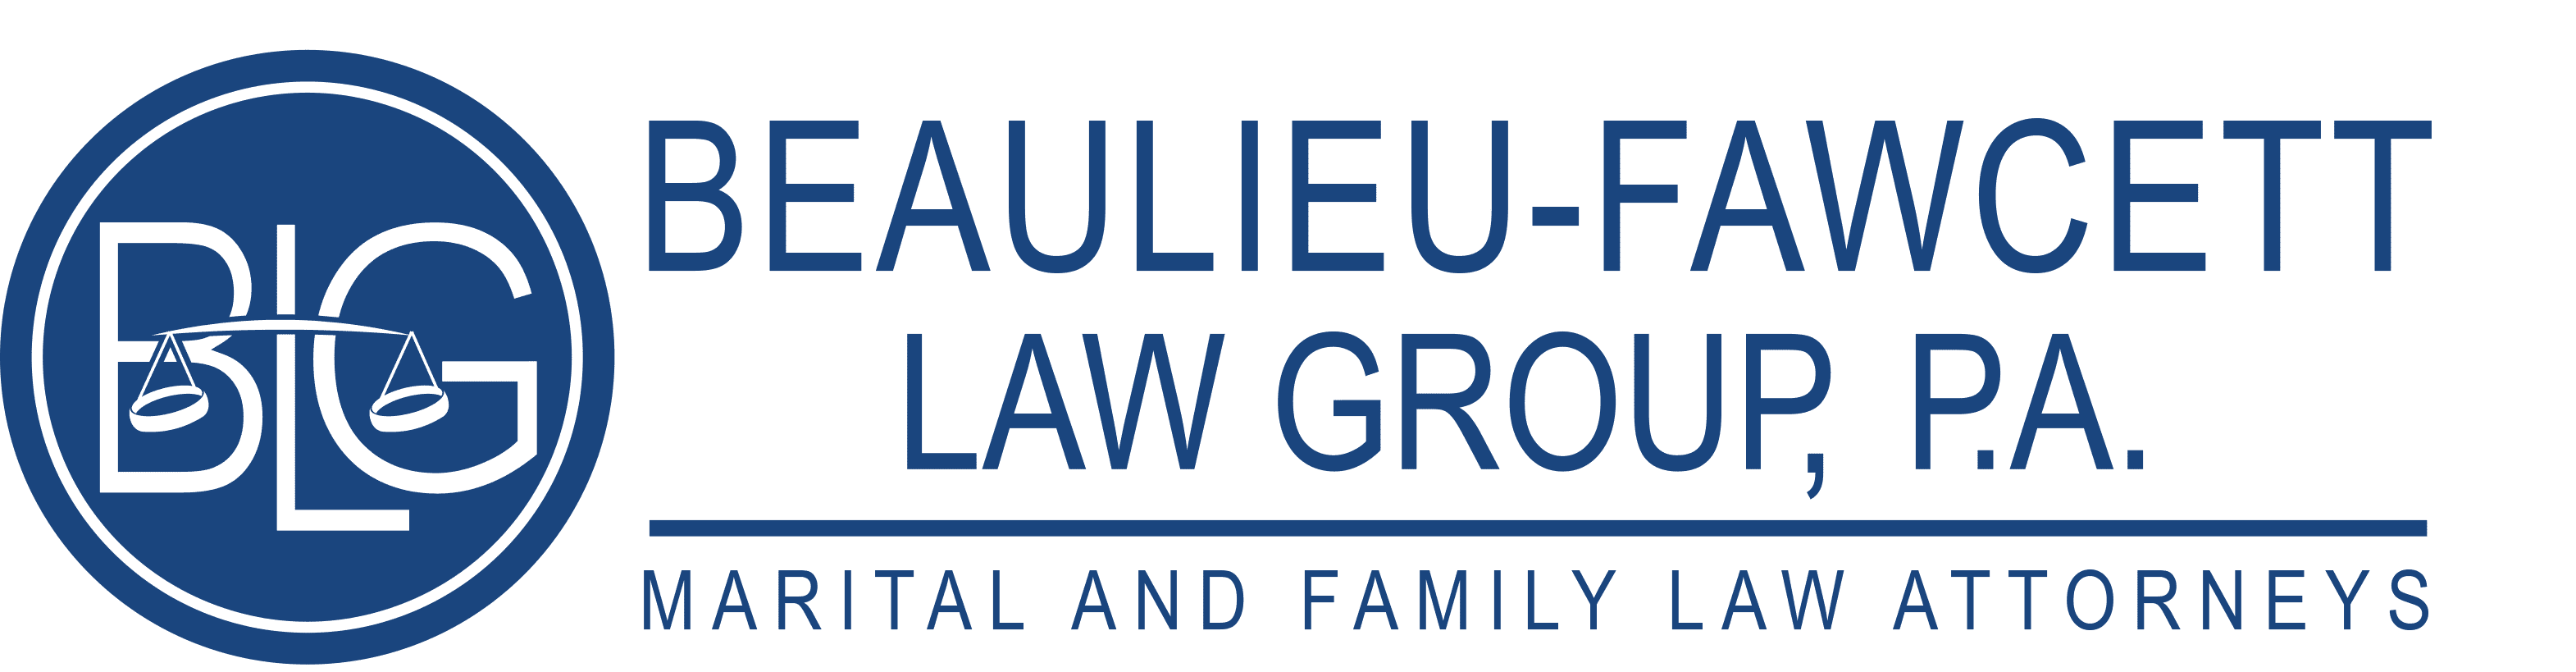 Beaulieu-Fawcett Law Group, P. A.